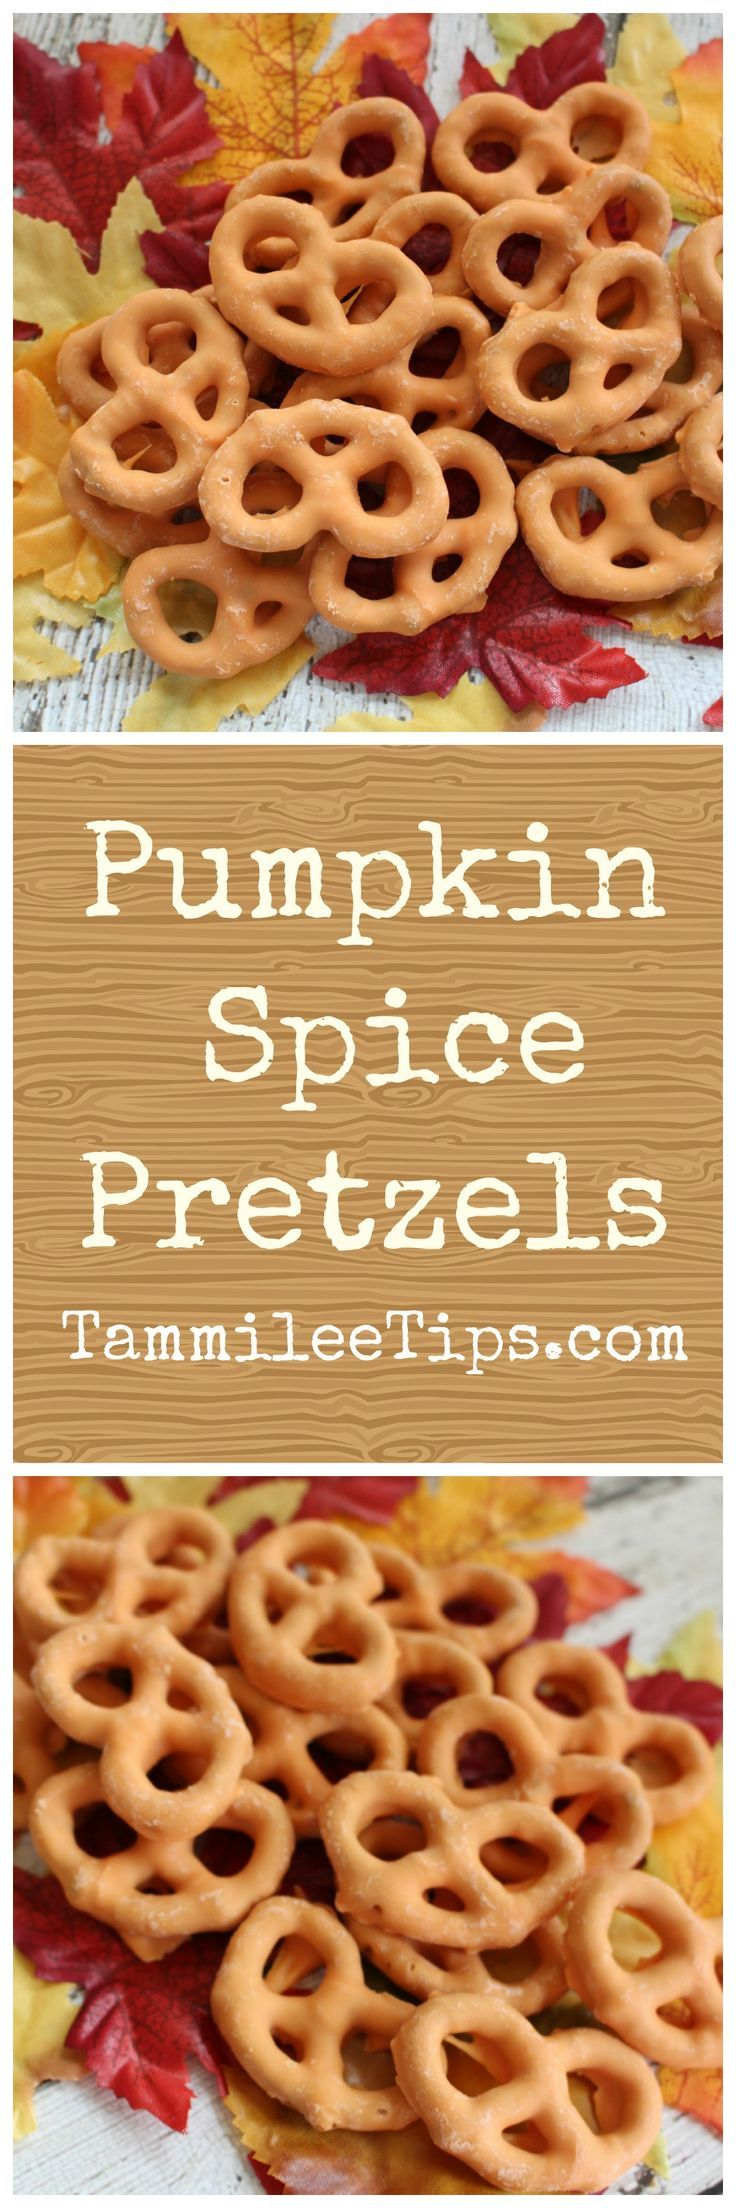 Pumpkin Spice Pretzel Recipe! The perfect fall snack recipe that is so easy to make. If you love pumpkin you will love this recipe.